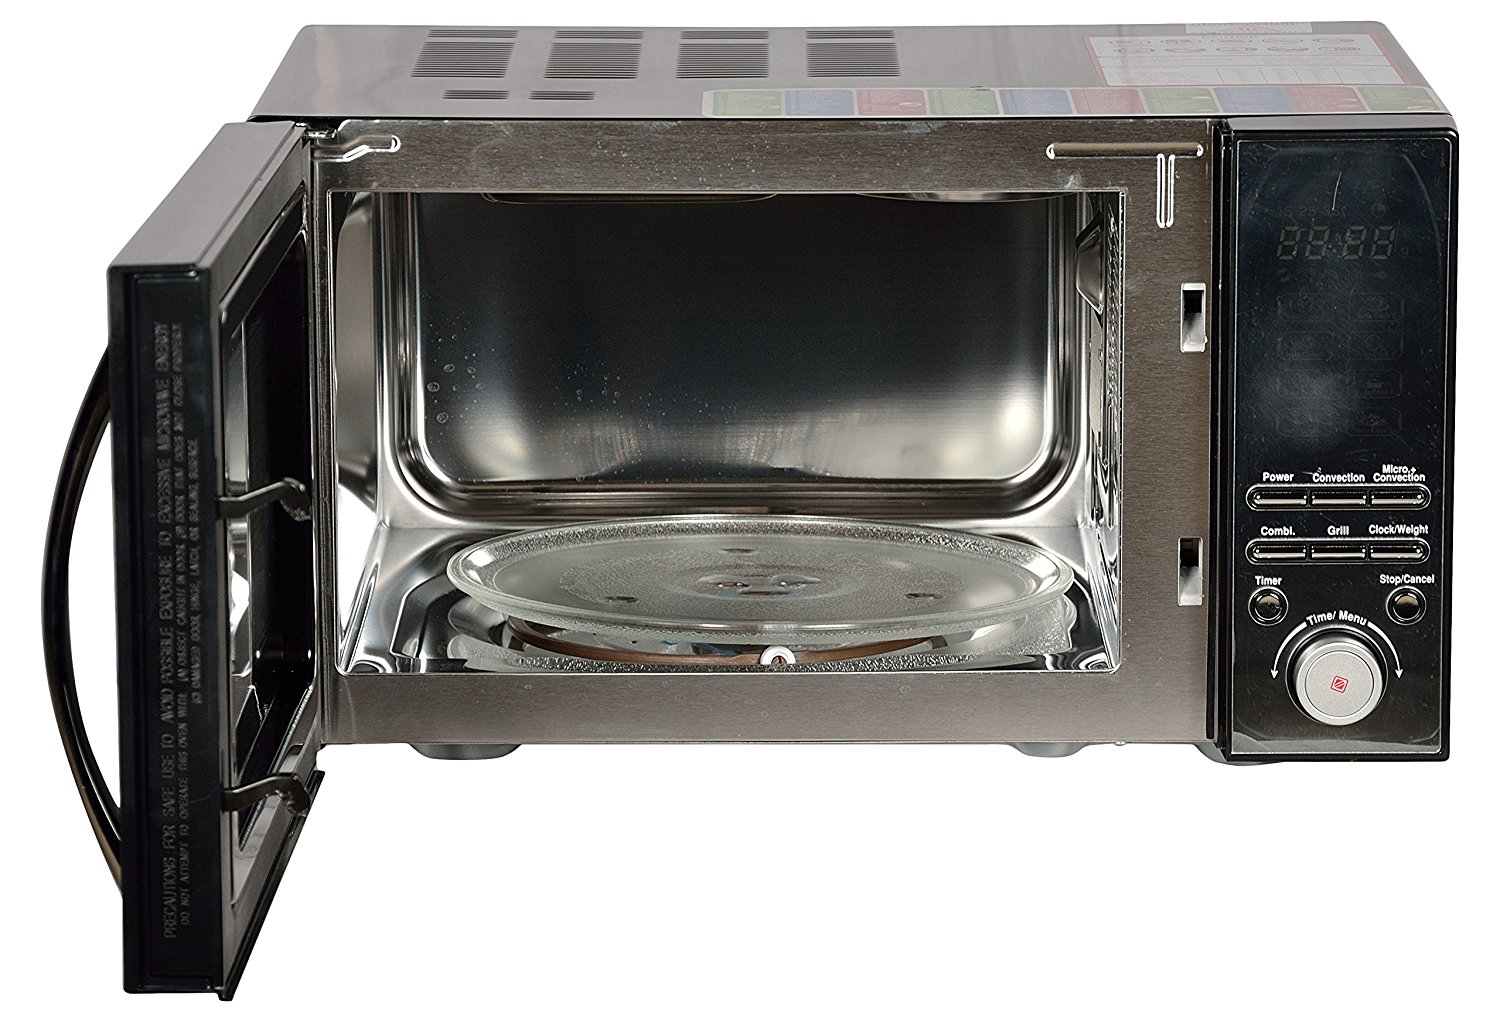 Godrej convection mode microwave